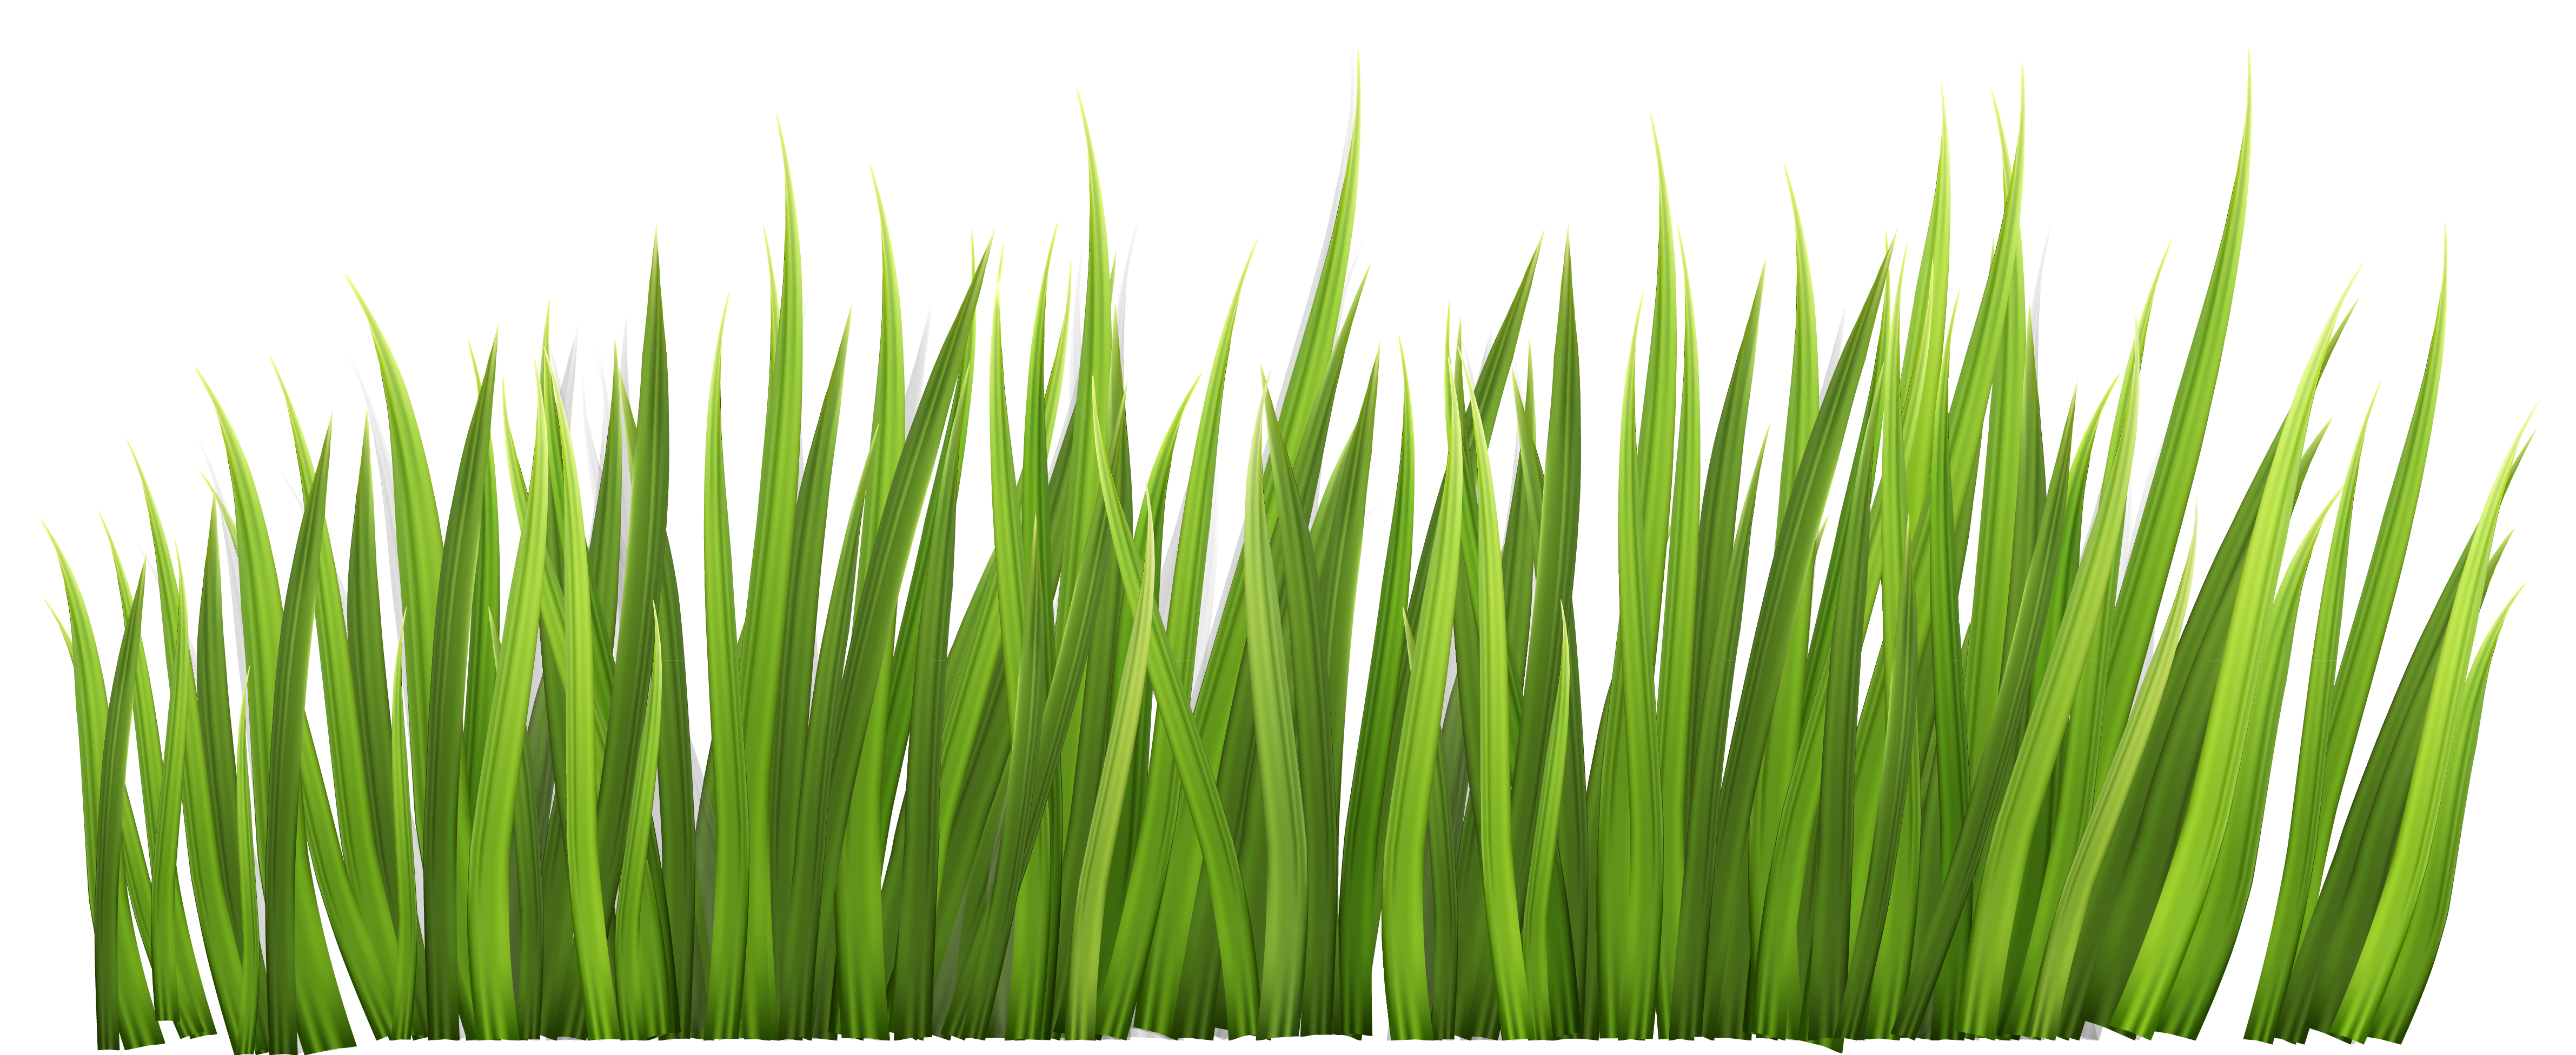 Lawn clipart #6, Download drawings